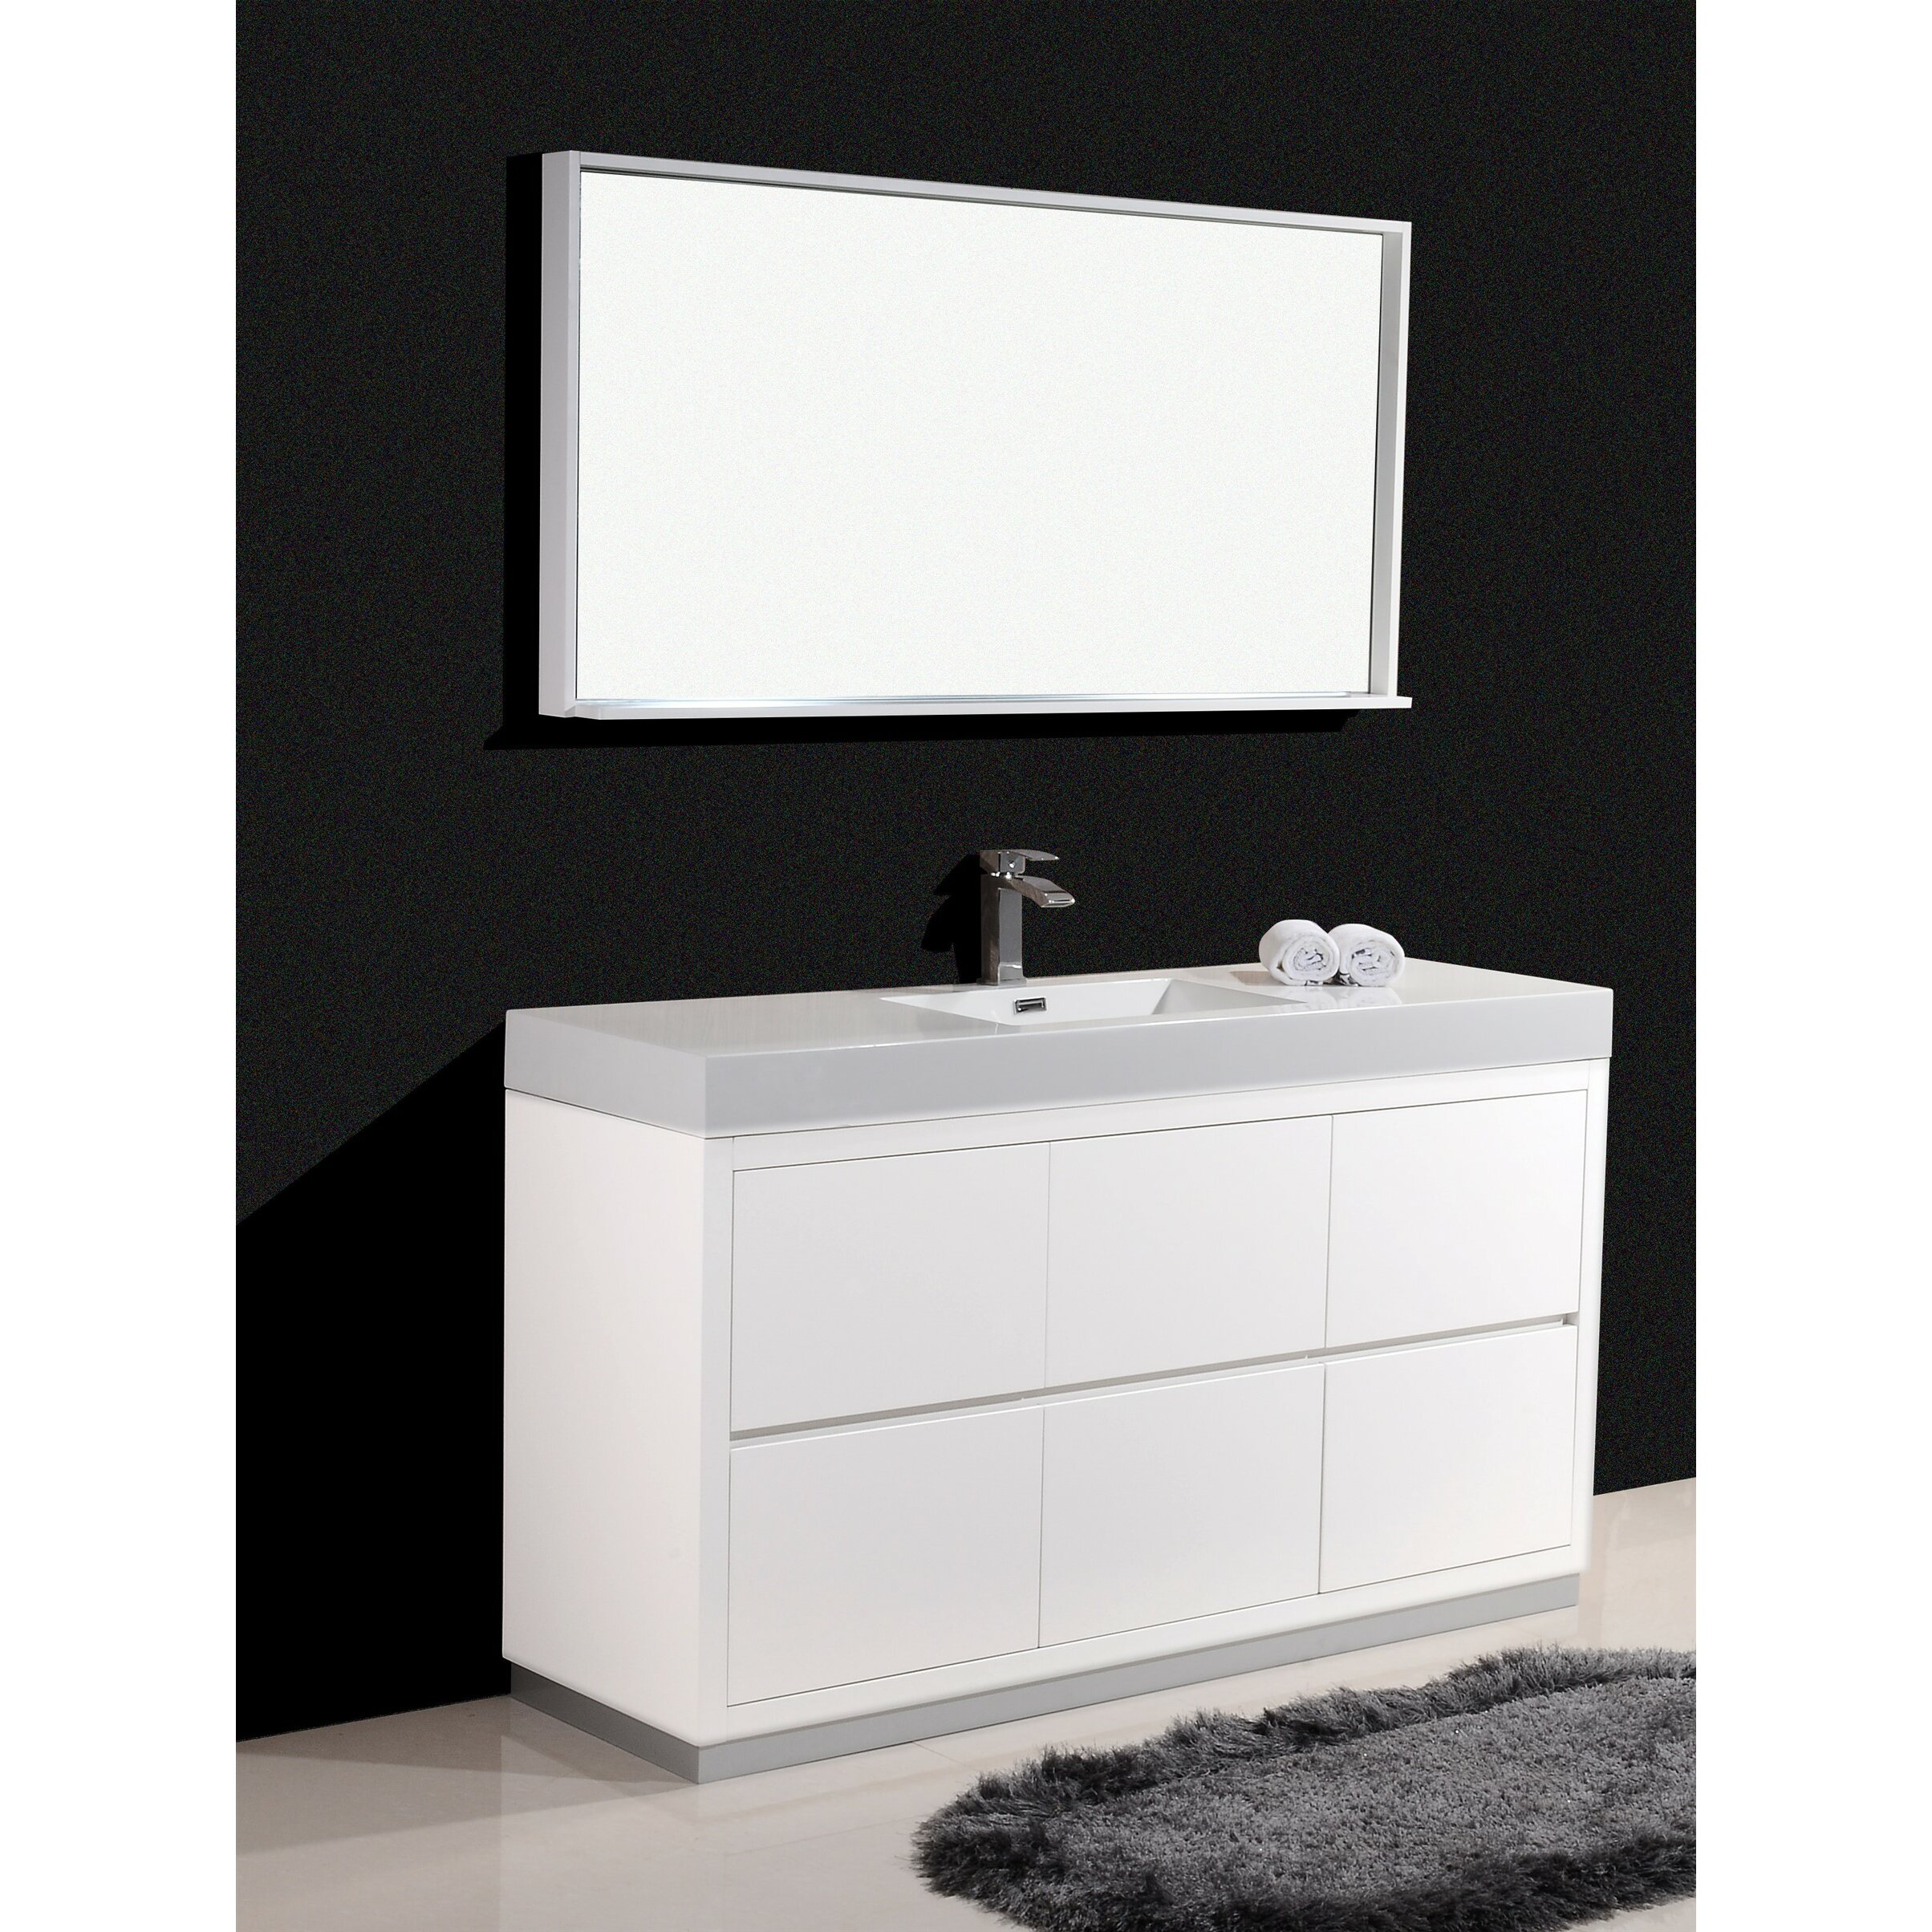 Kube Bath Bliss 60 Single Free Standing Modern Bathroom Vanity Set Reviews